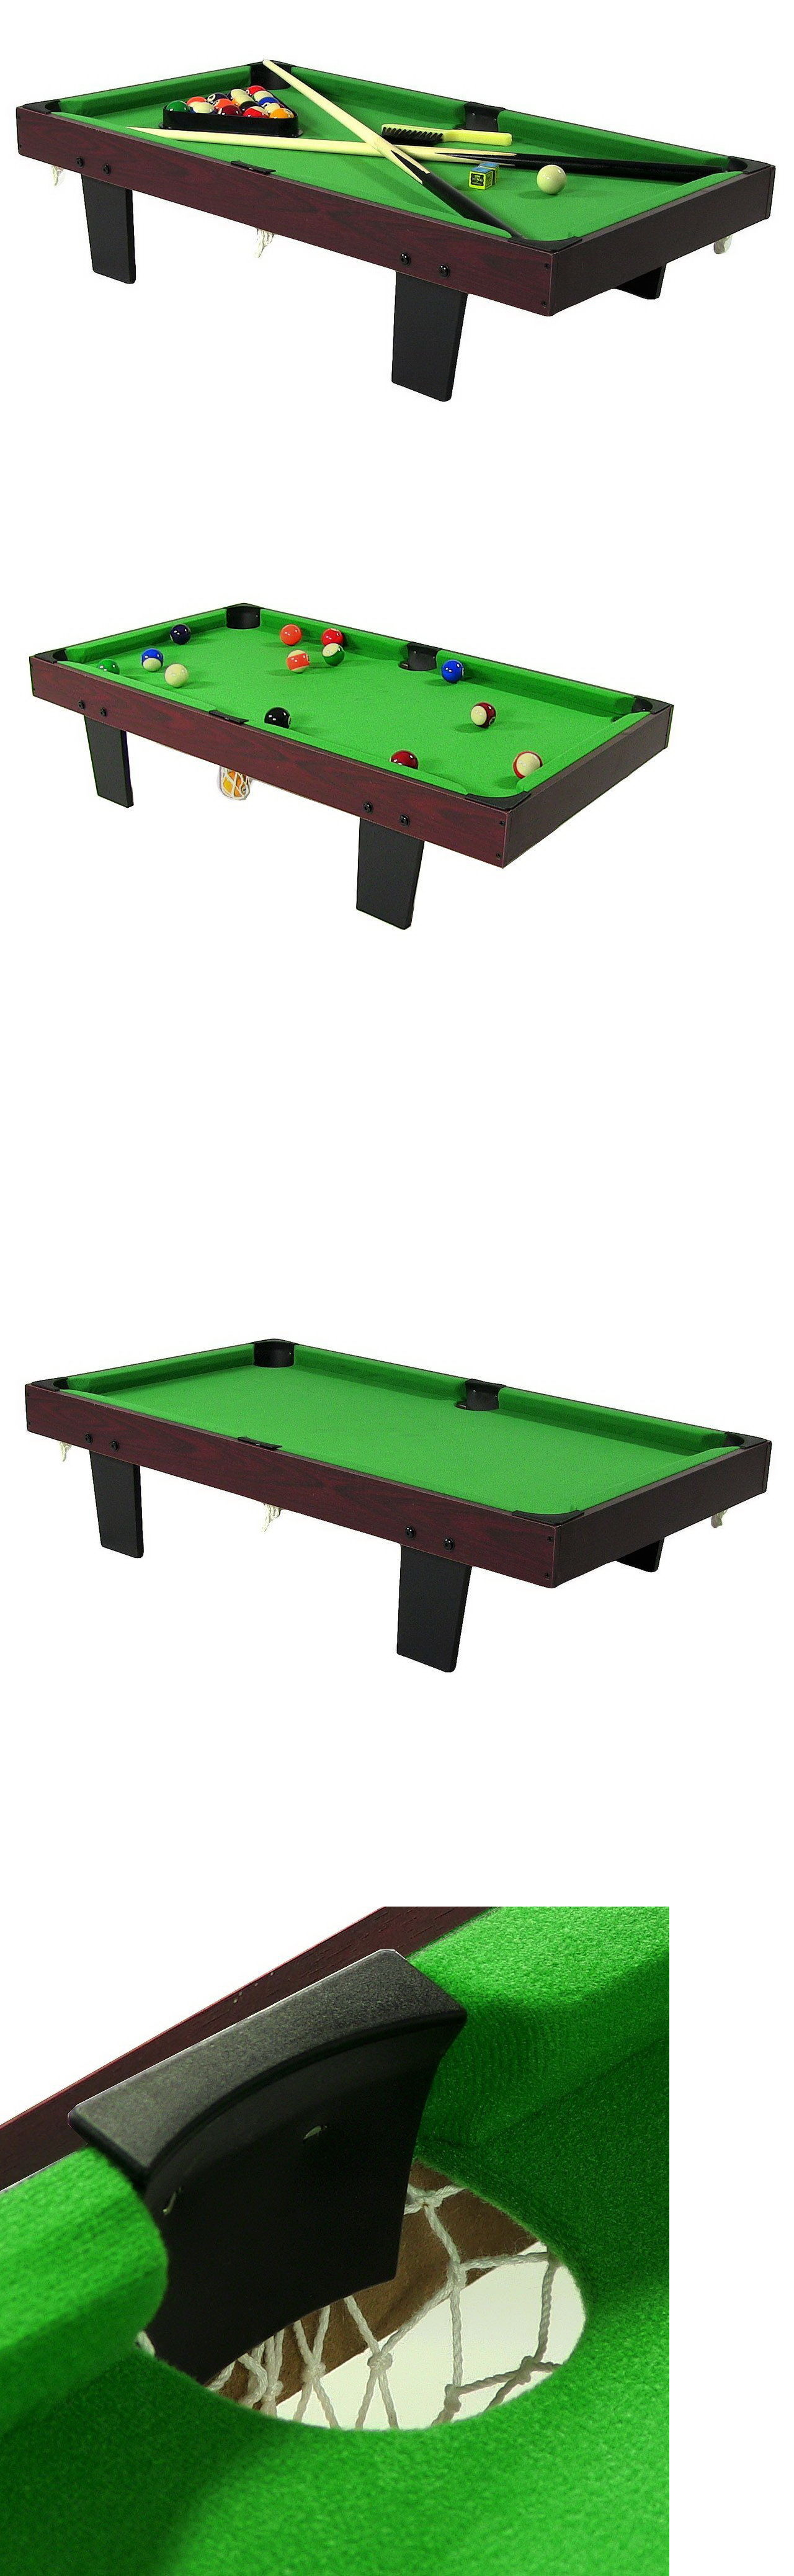 Tables 21213: 36 Inch Mini Tabletop Pool Table With Triangle, Balls, Cues